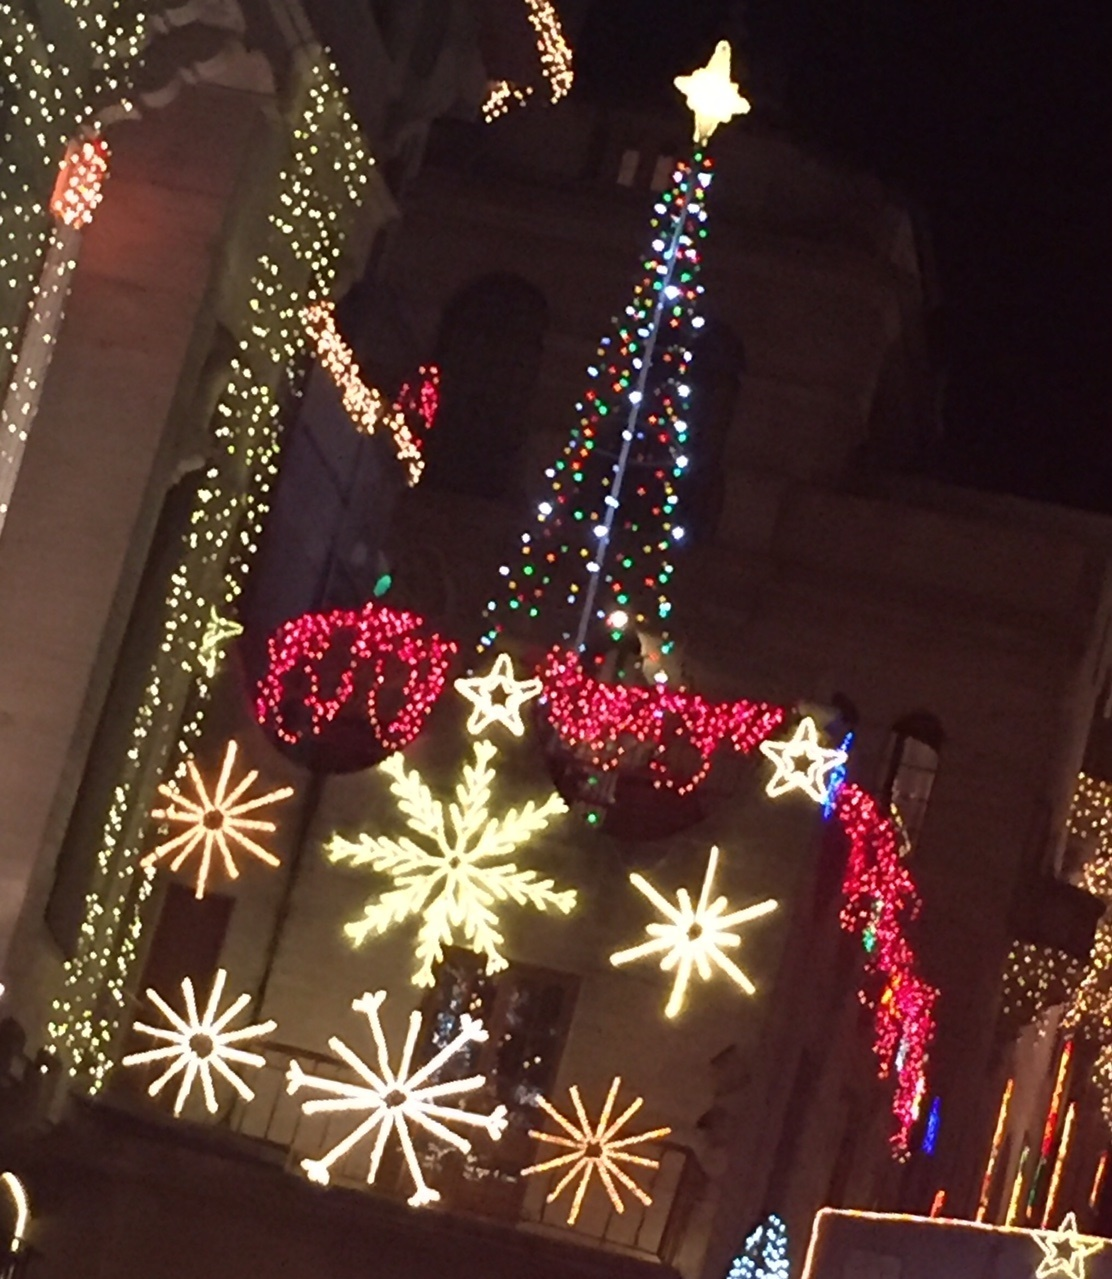 Mission Inn Festival of Lights